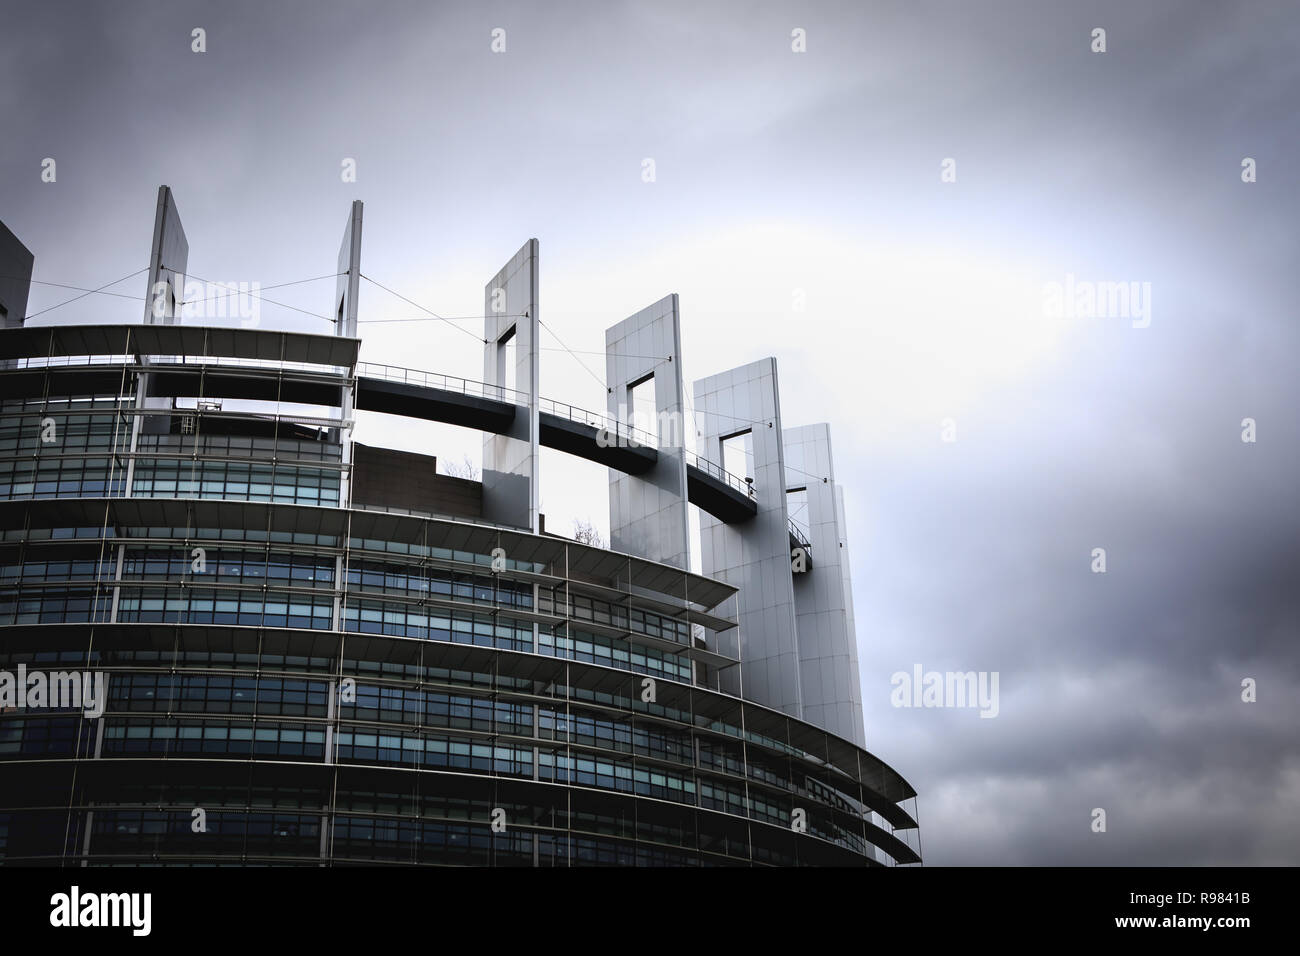 Strasbourg, France - December 28, 2017 - Architectural detail of the European Parliament on a winter day at dusk - Stock Image